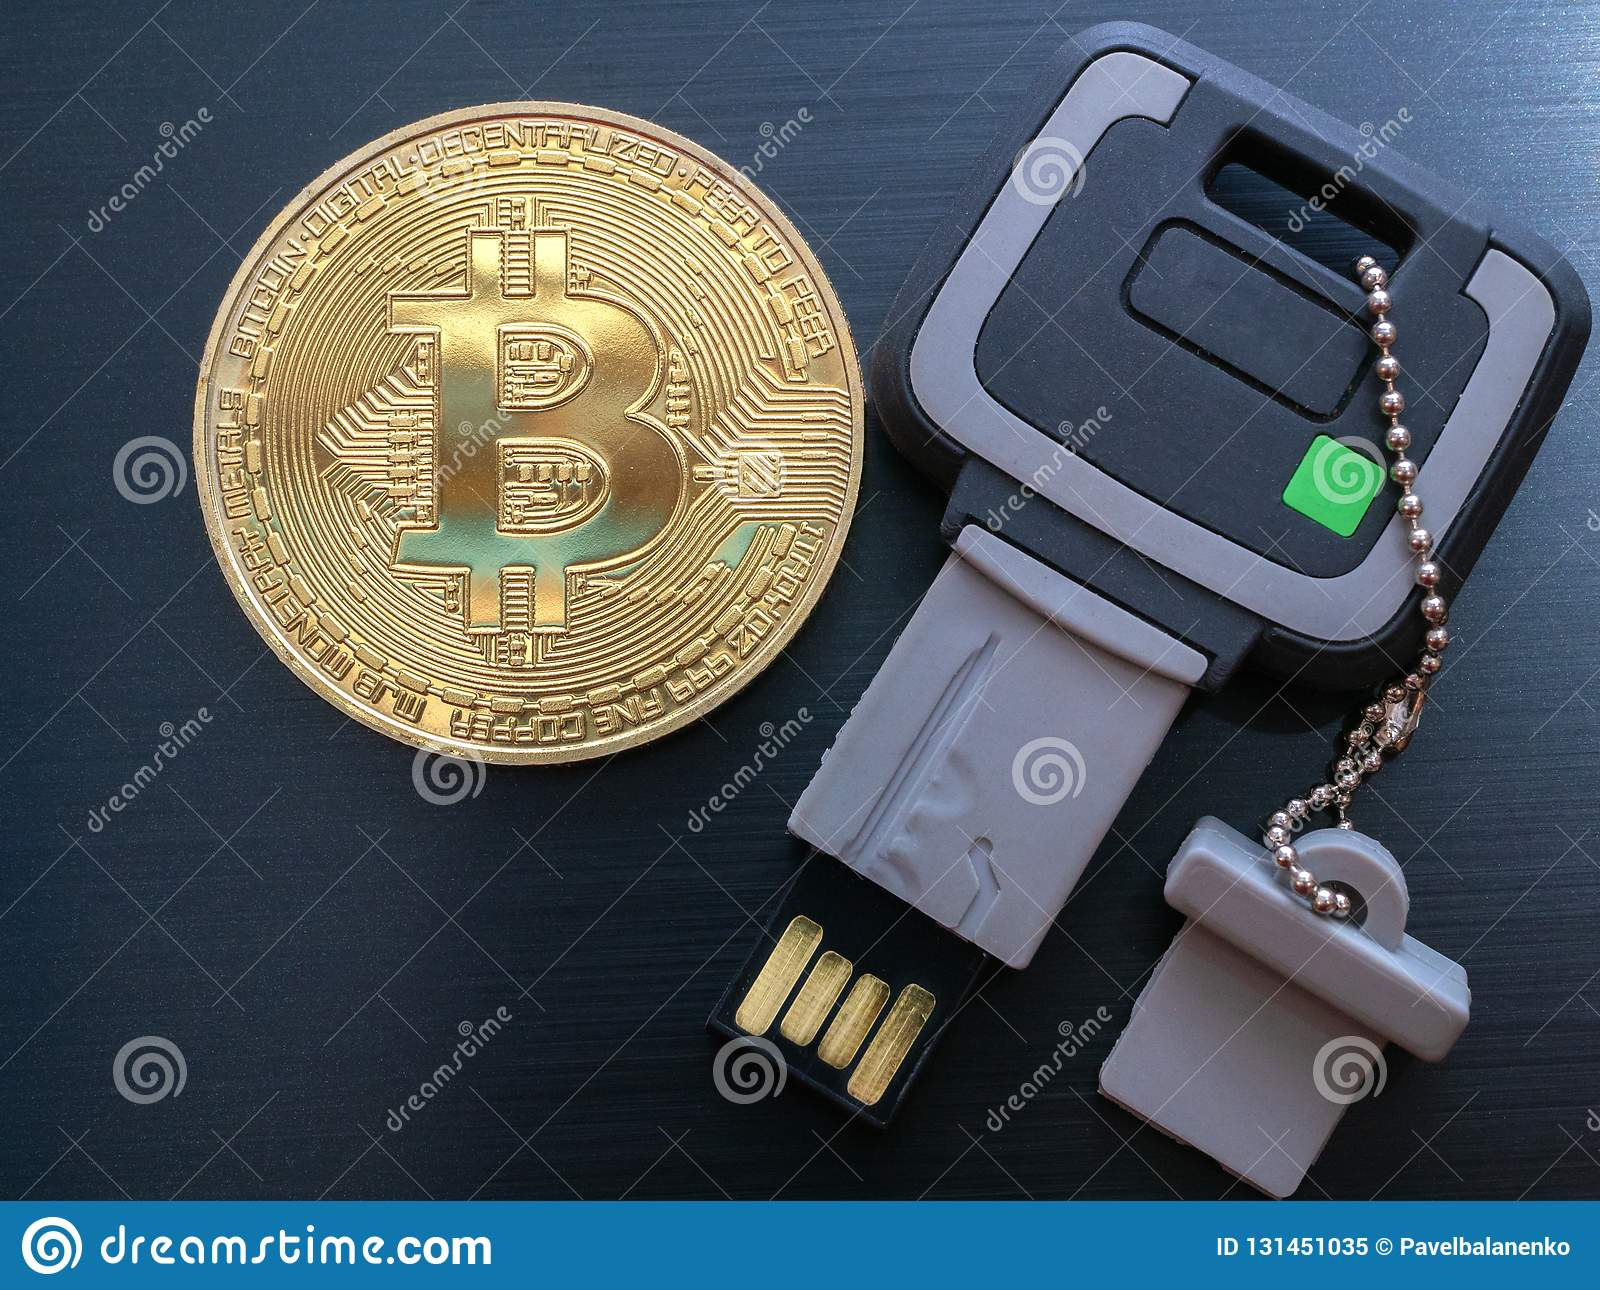 cryptocurrency wallet thumb drive